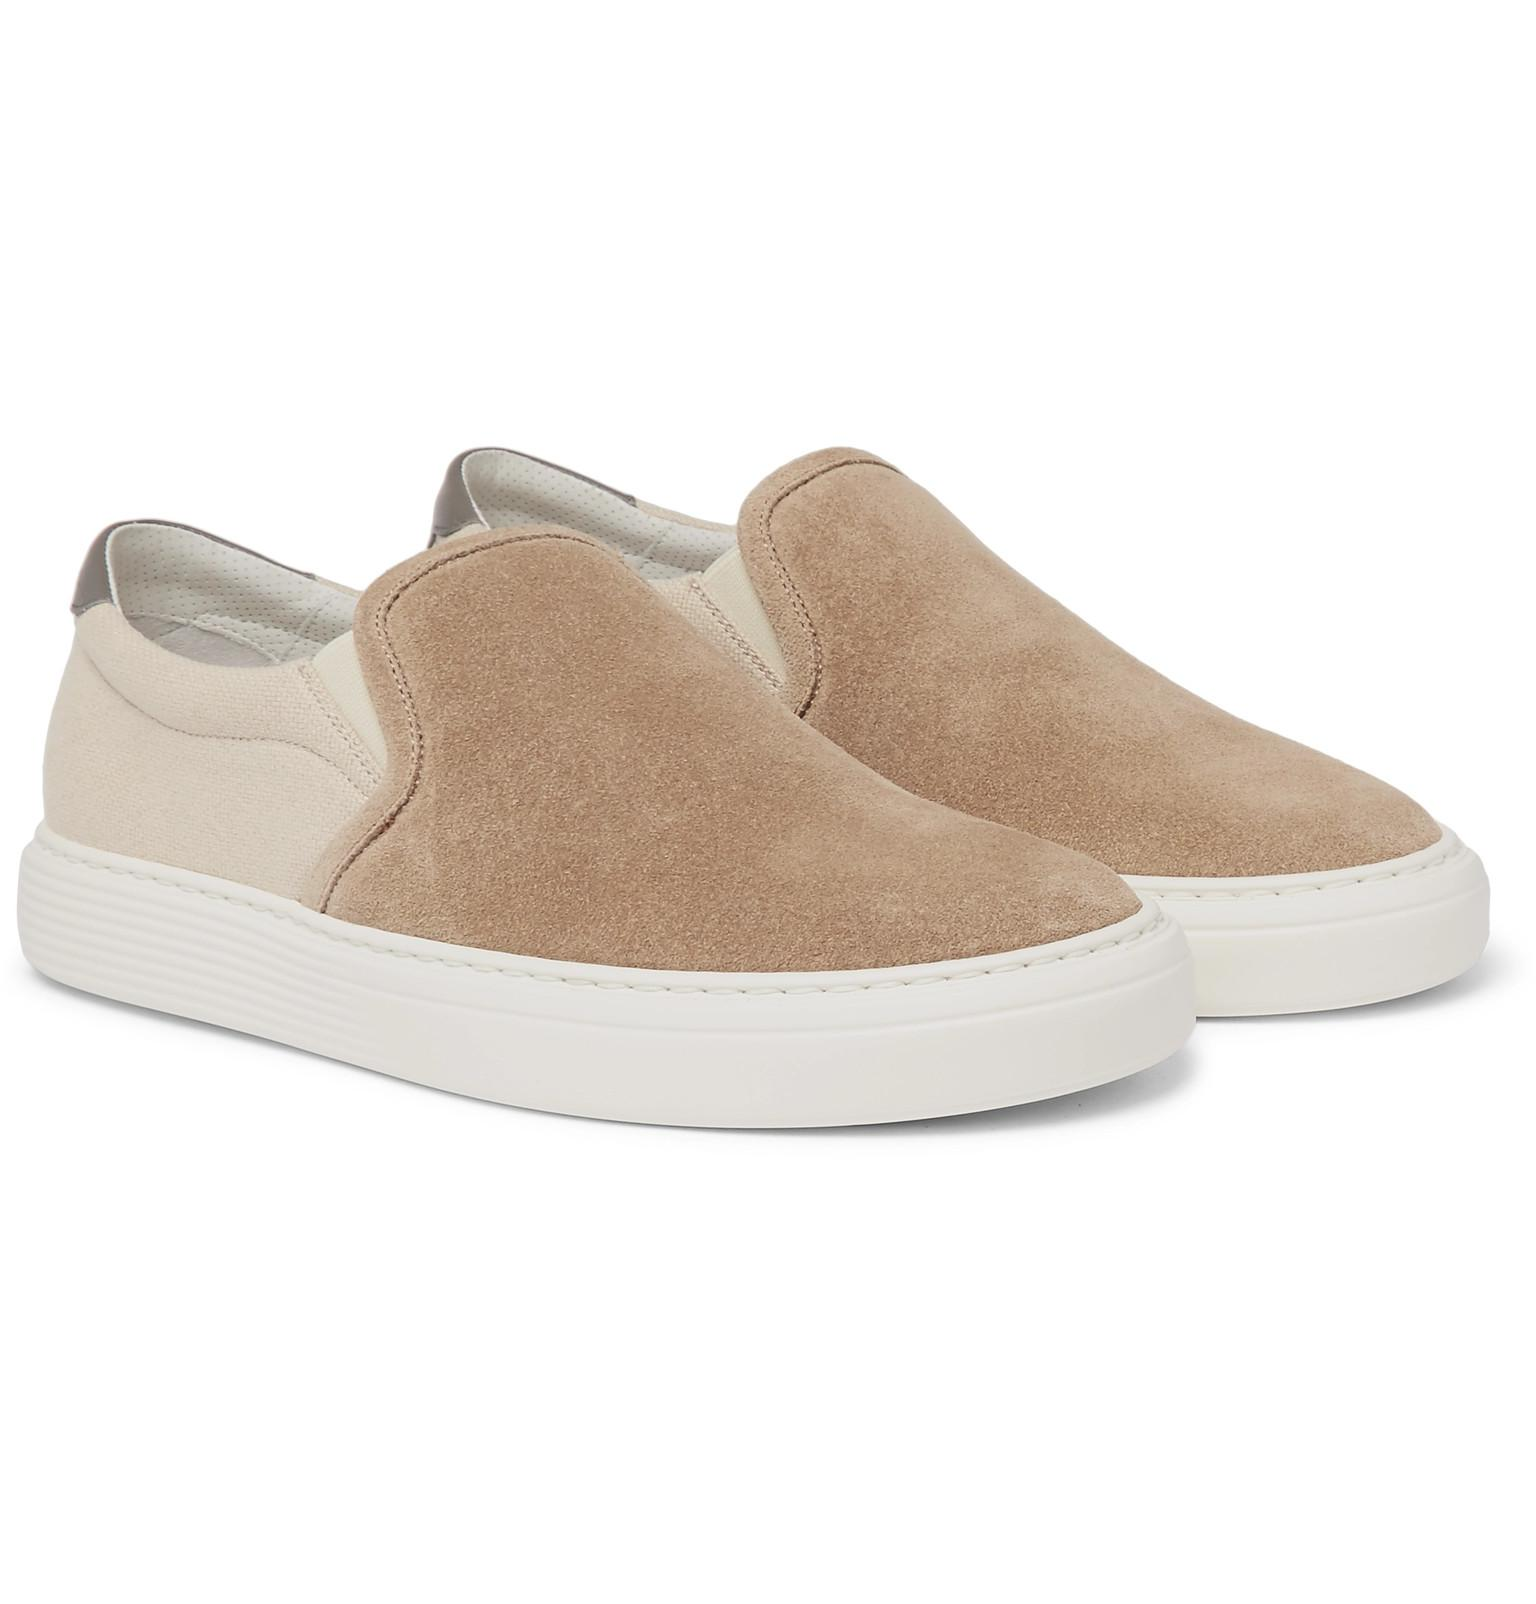 Suede And Canvas Slip-on Sneakers Brunello Cucinelli pizKRFrKyA